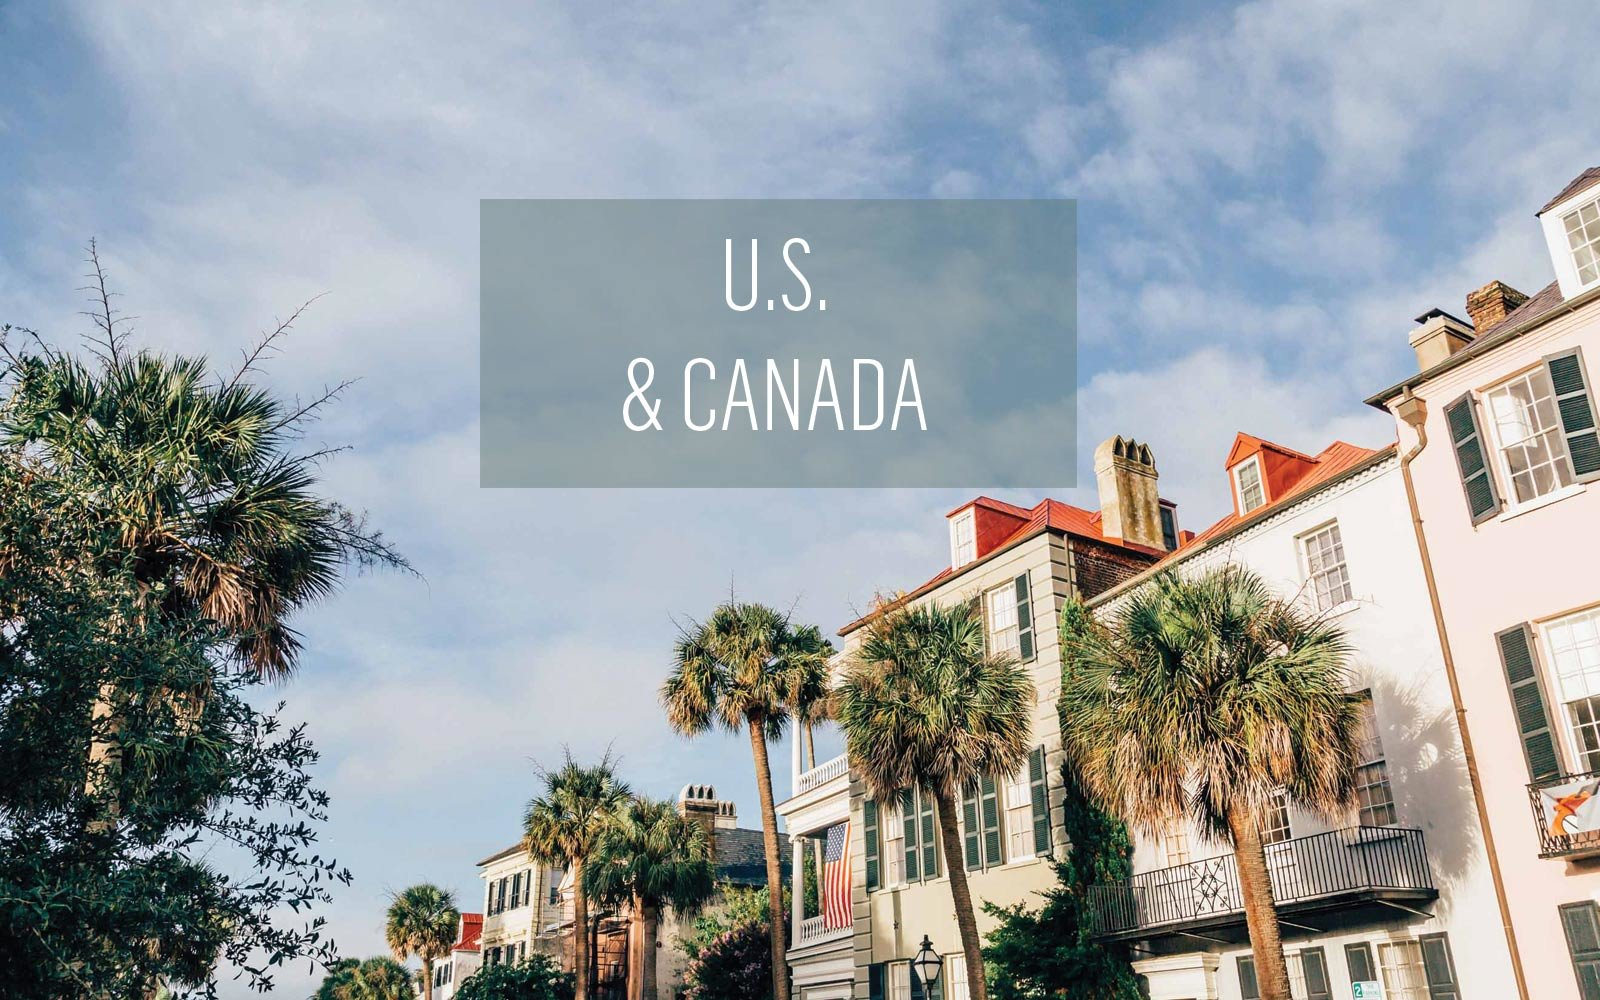 U.S. and Canada, Charleston, South Carolina